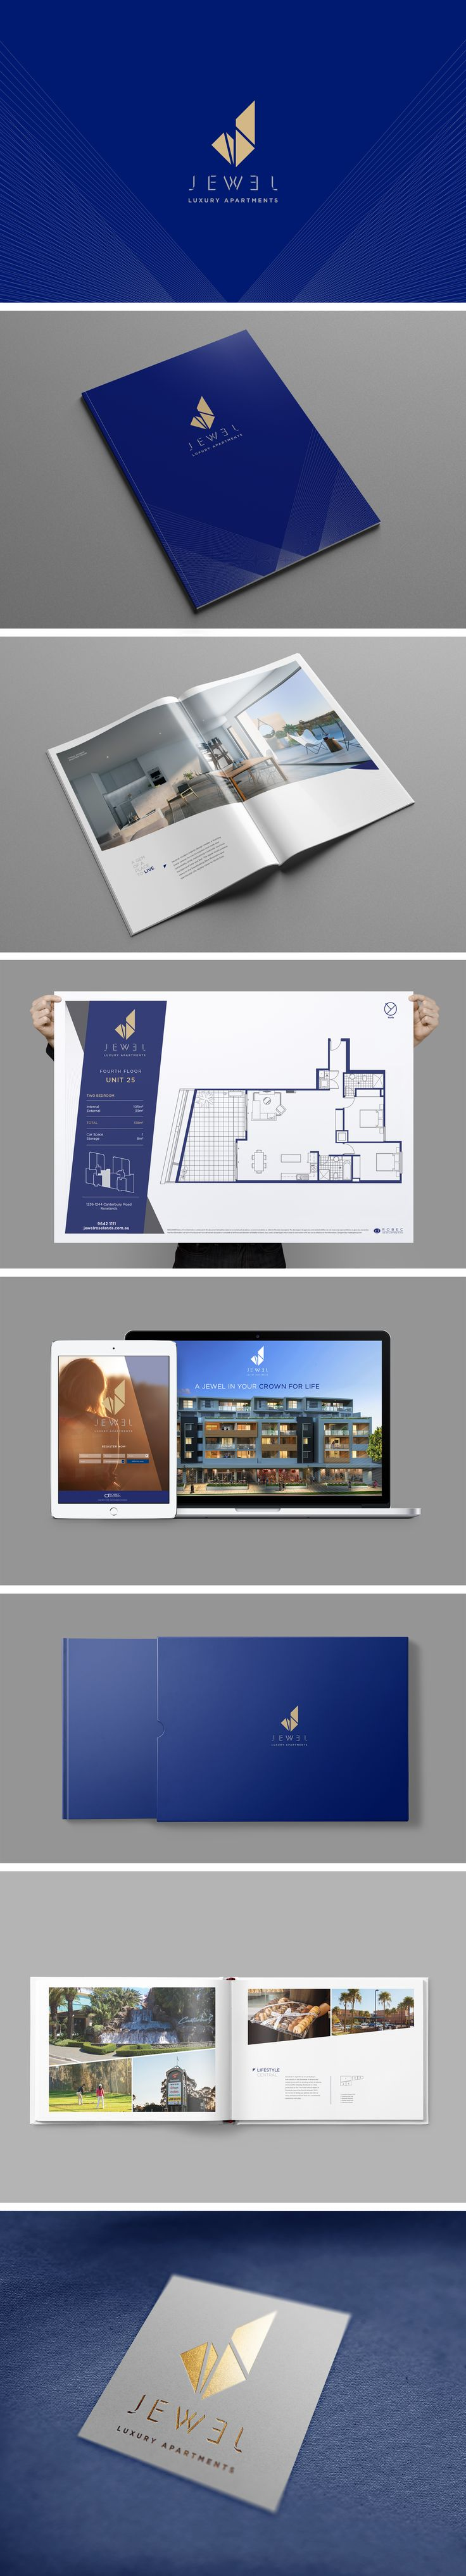 Jewel Roselands is an apartment complex situated in one of Sydney's best suburbs in the Southwest. Made designed their marketing collateral and brand identity to reflect and enhance the architecturally ingenious modern residences.